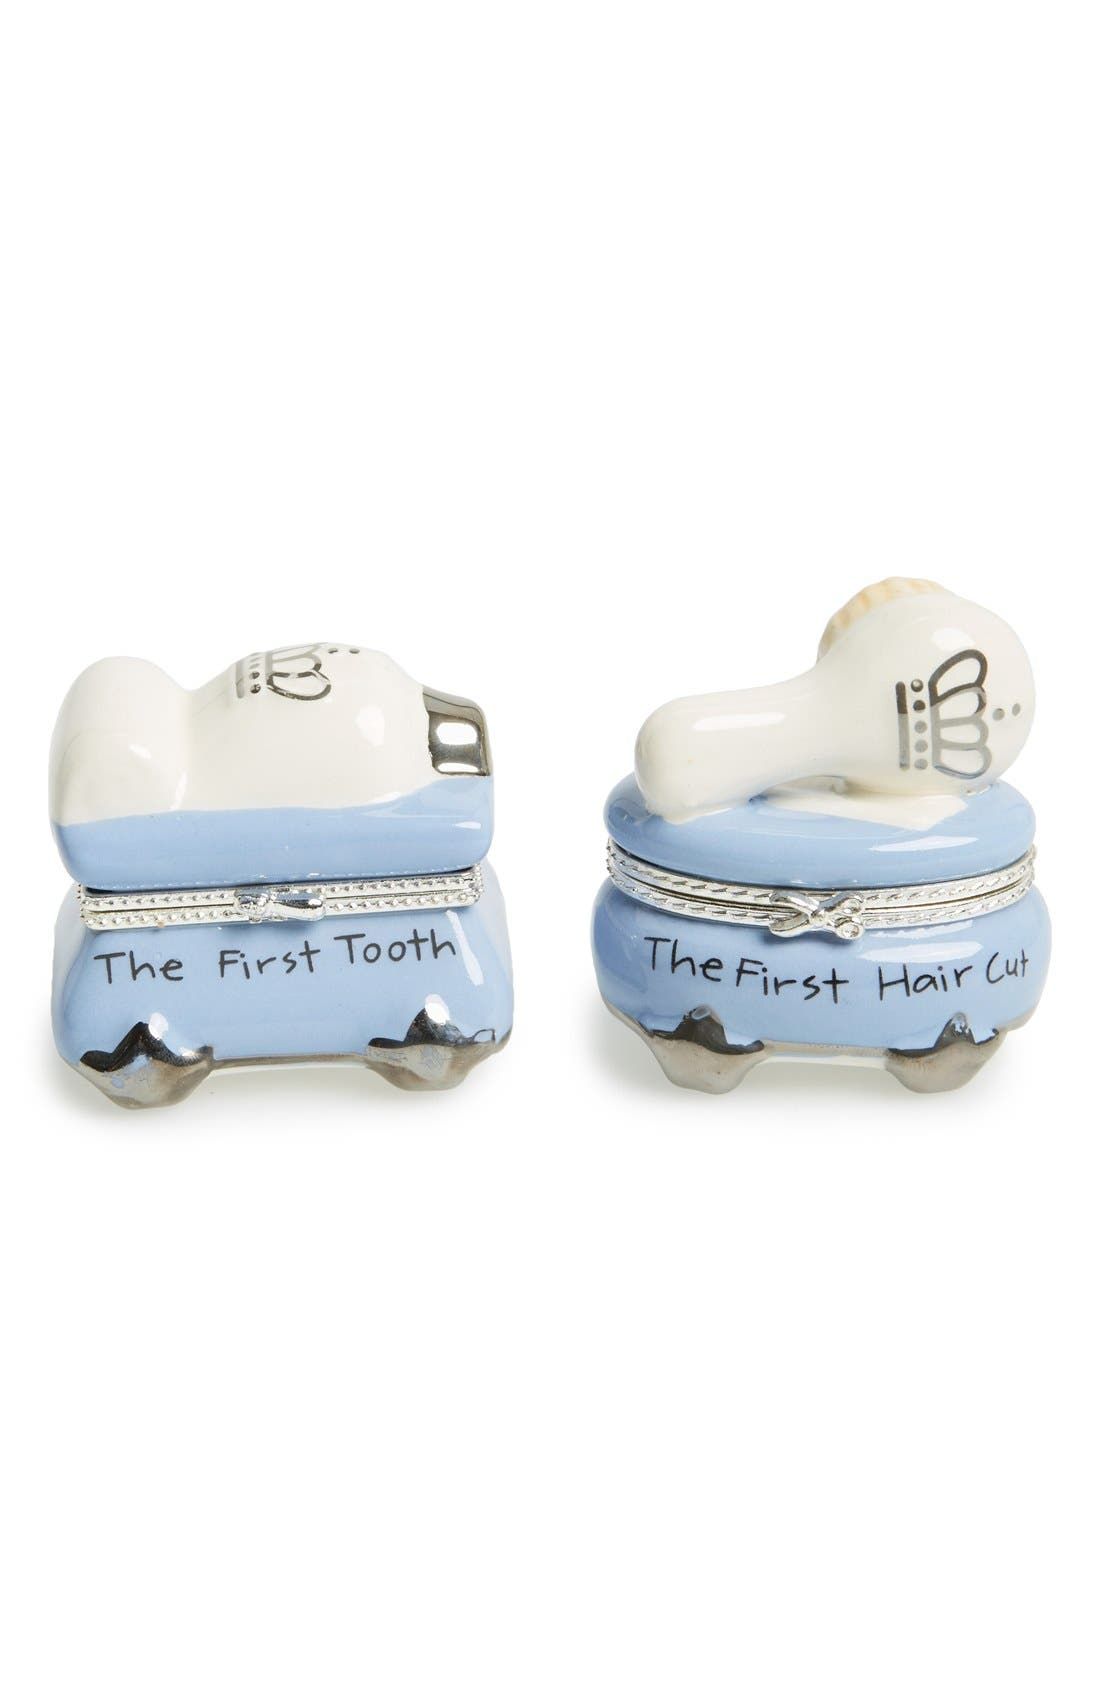 'Prince' First Tooth & Curl Treasure Box Set,                         Main,                         color, Blue